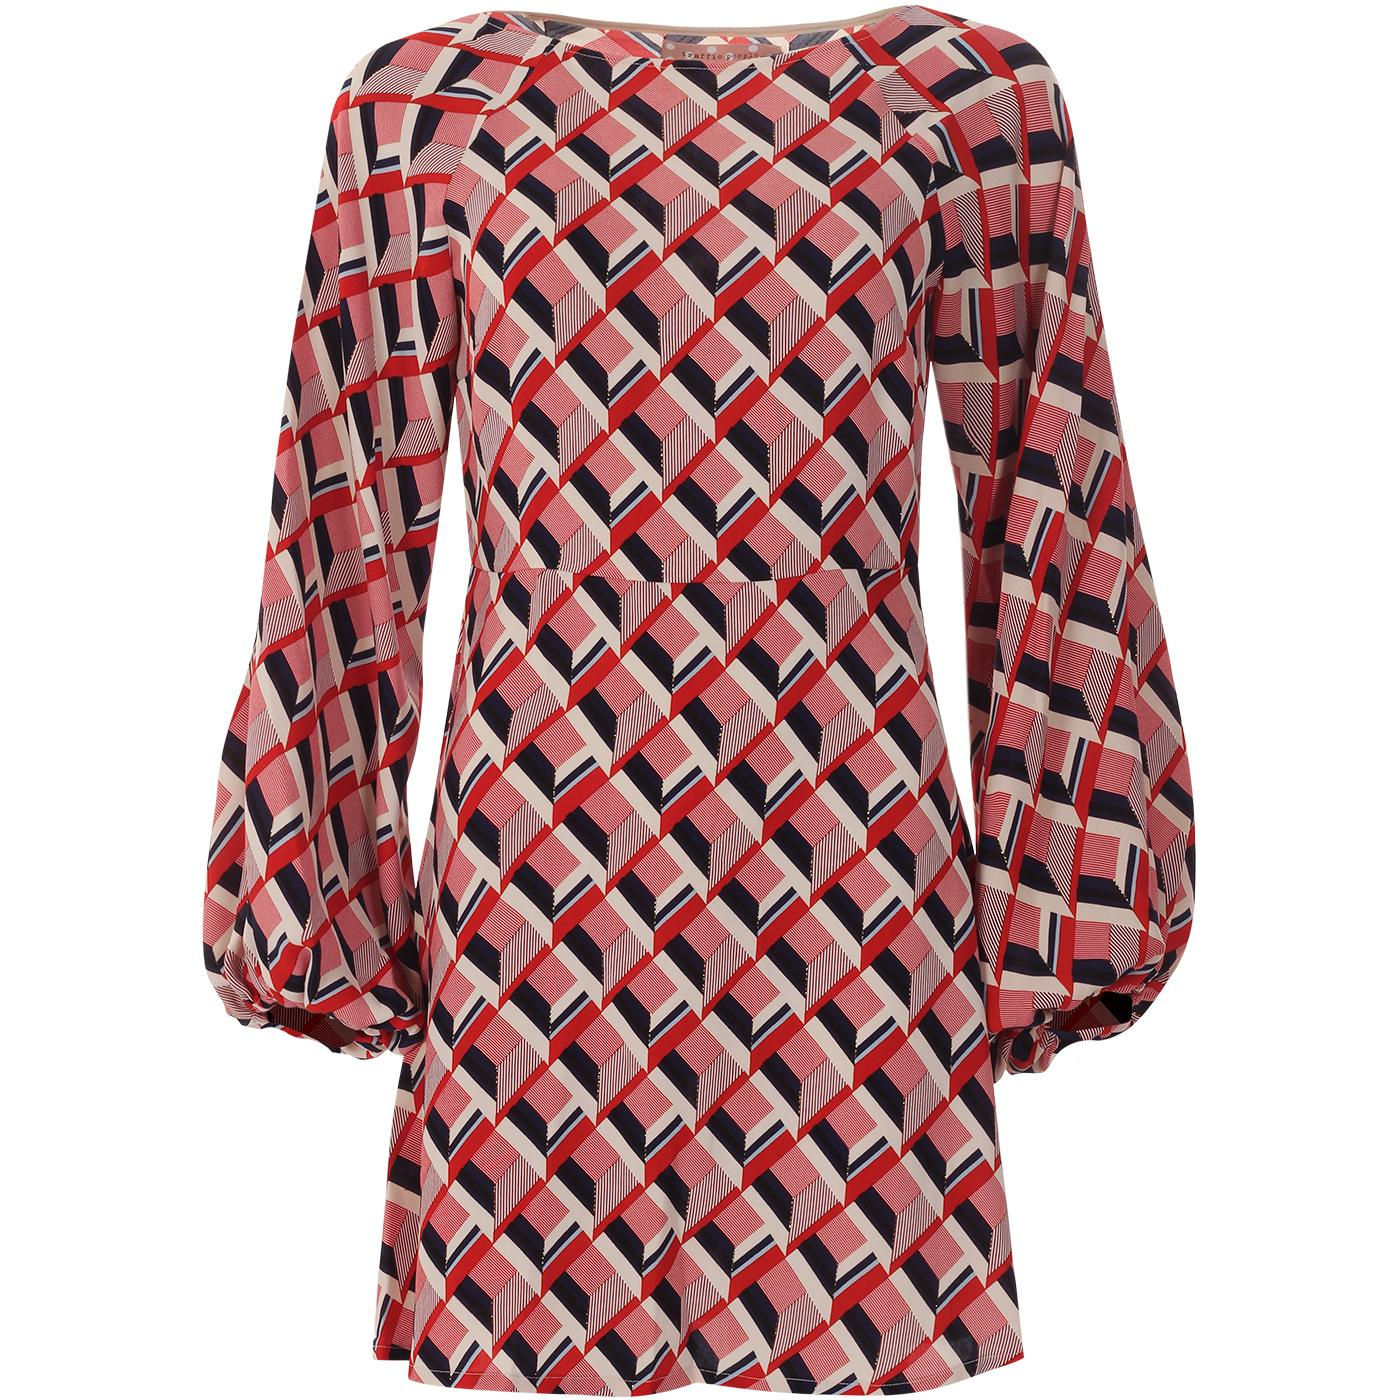 Audrey TRAFFIC PEOPLE 60s Mod Geo Pattern Dress